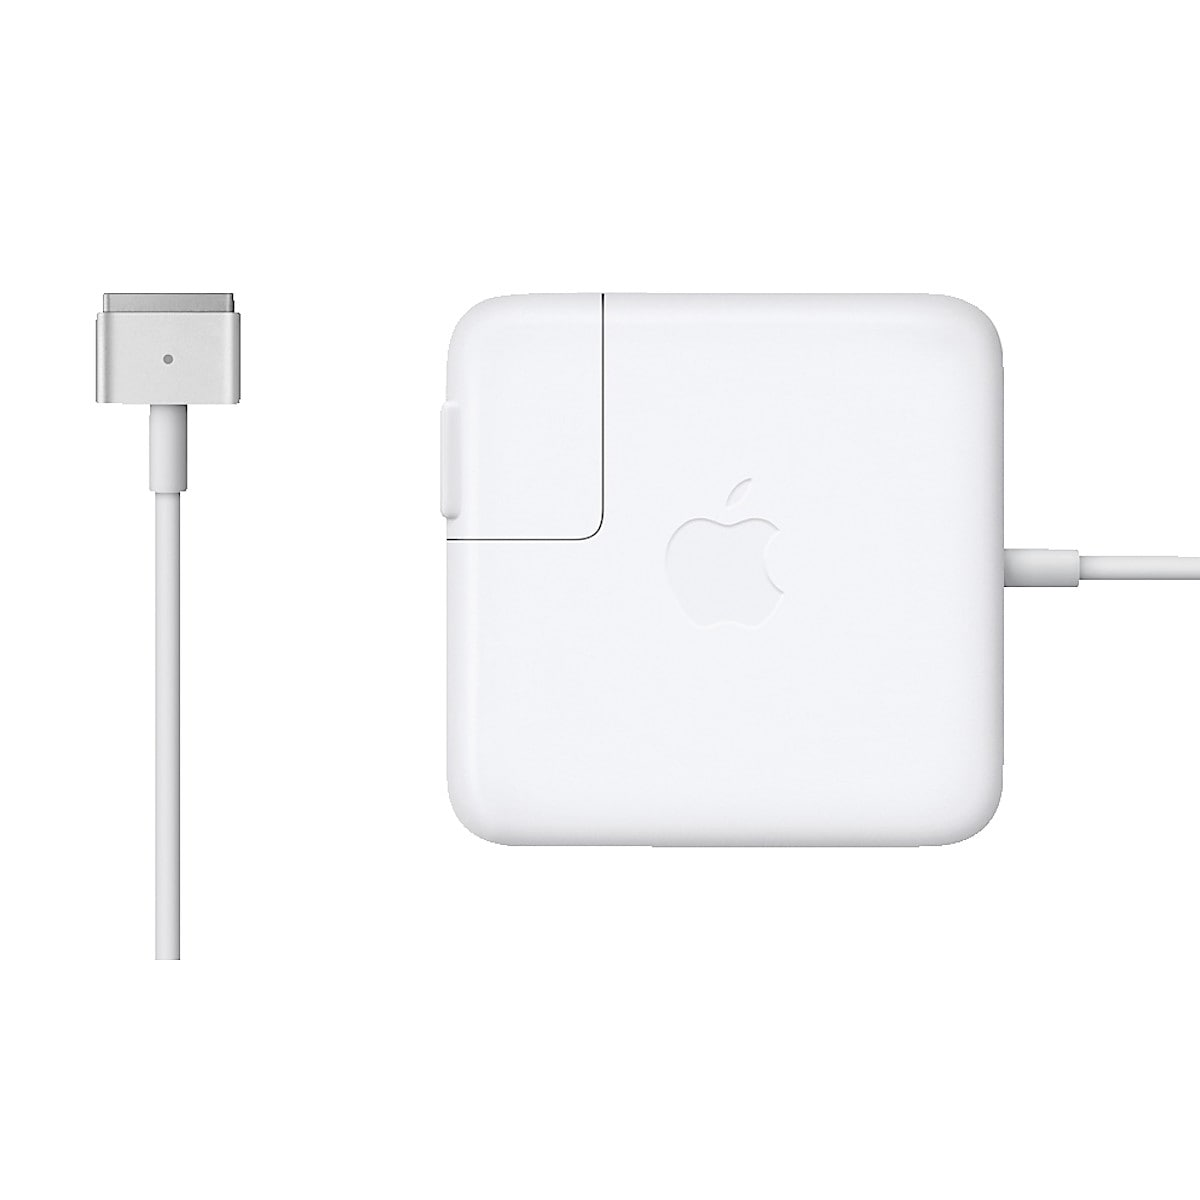 Strömadapter för MacBook Air Apple 45 W MagSafe 2